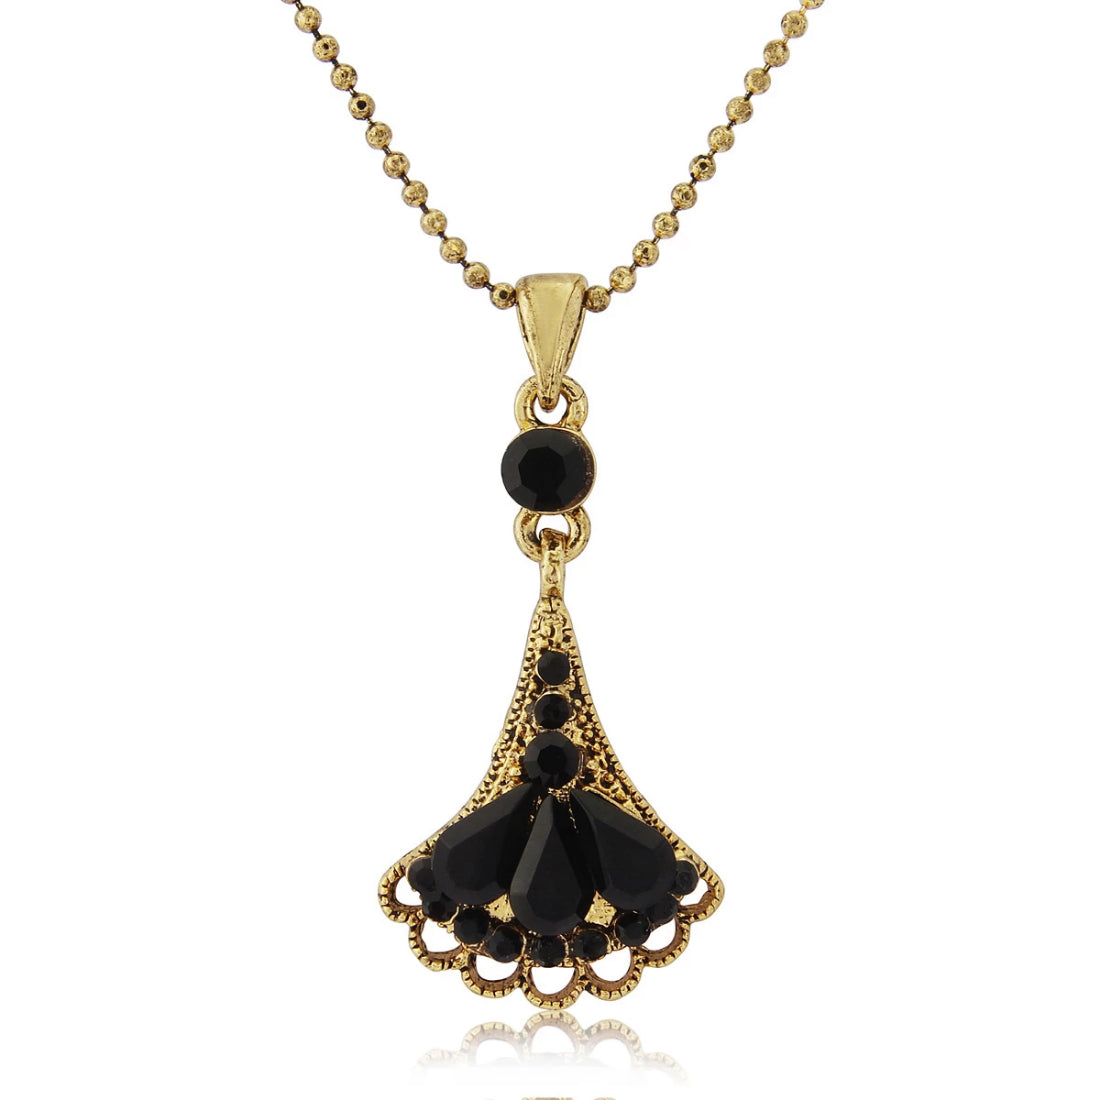 Decadence of Deco Black & Gold Pendant